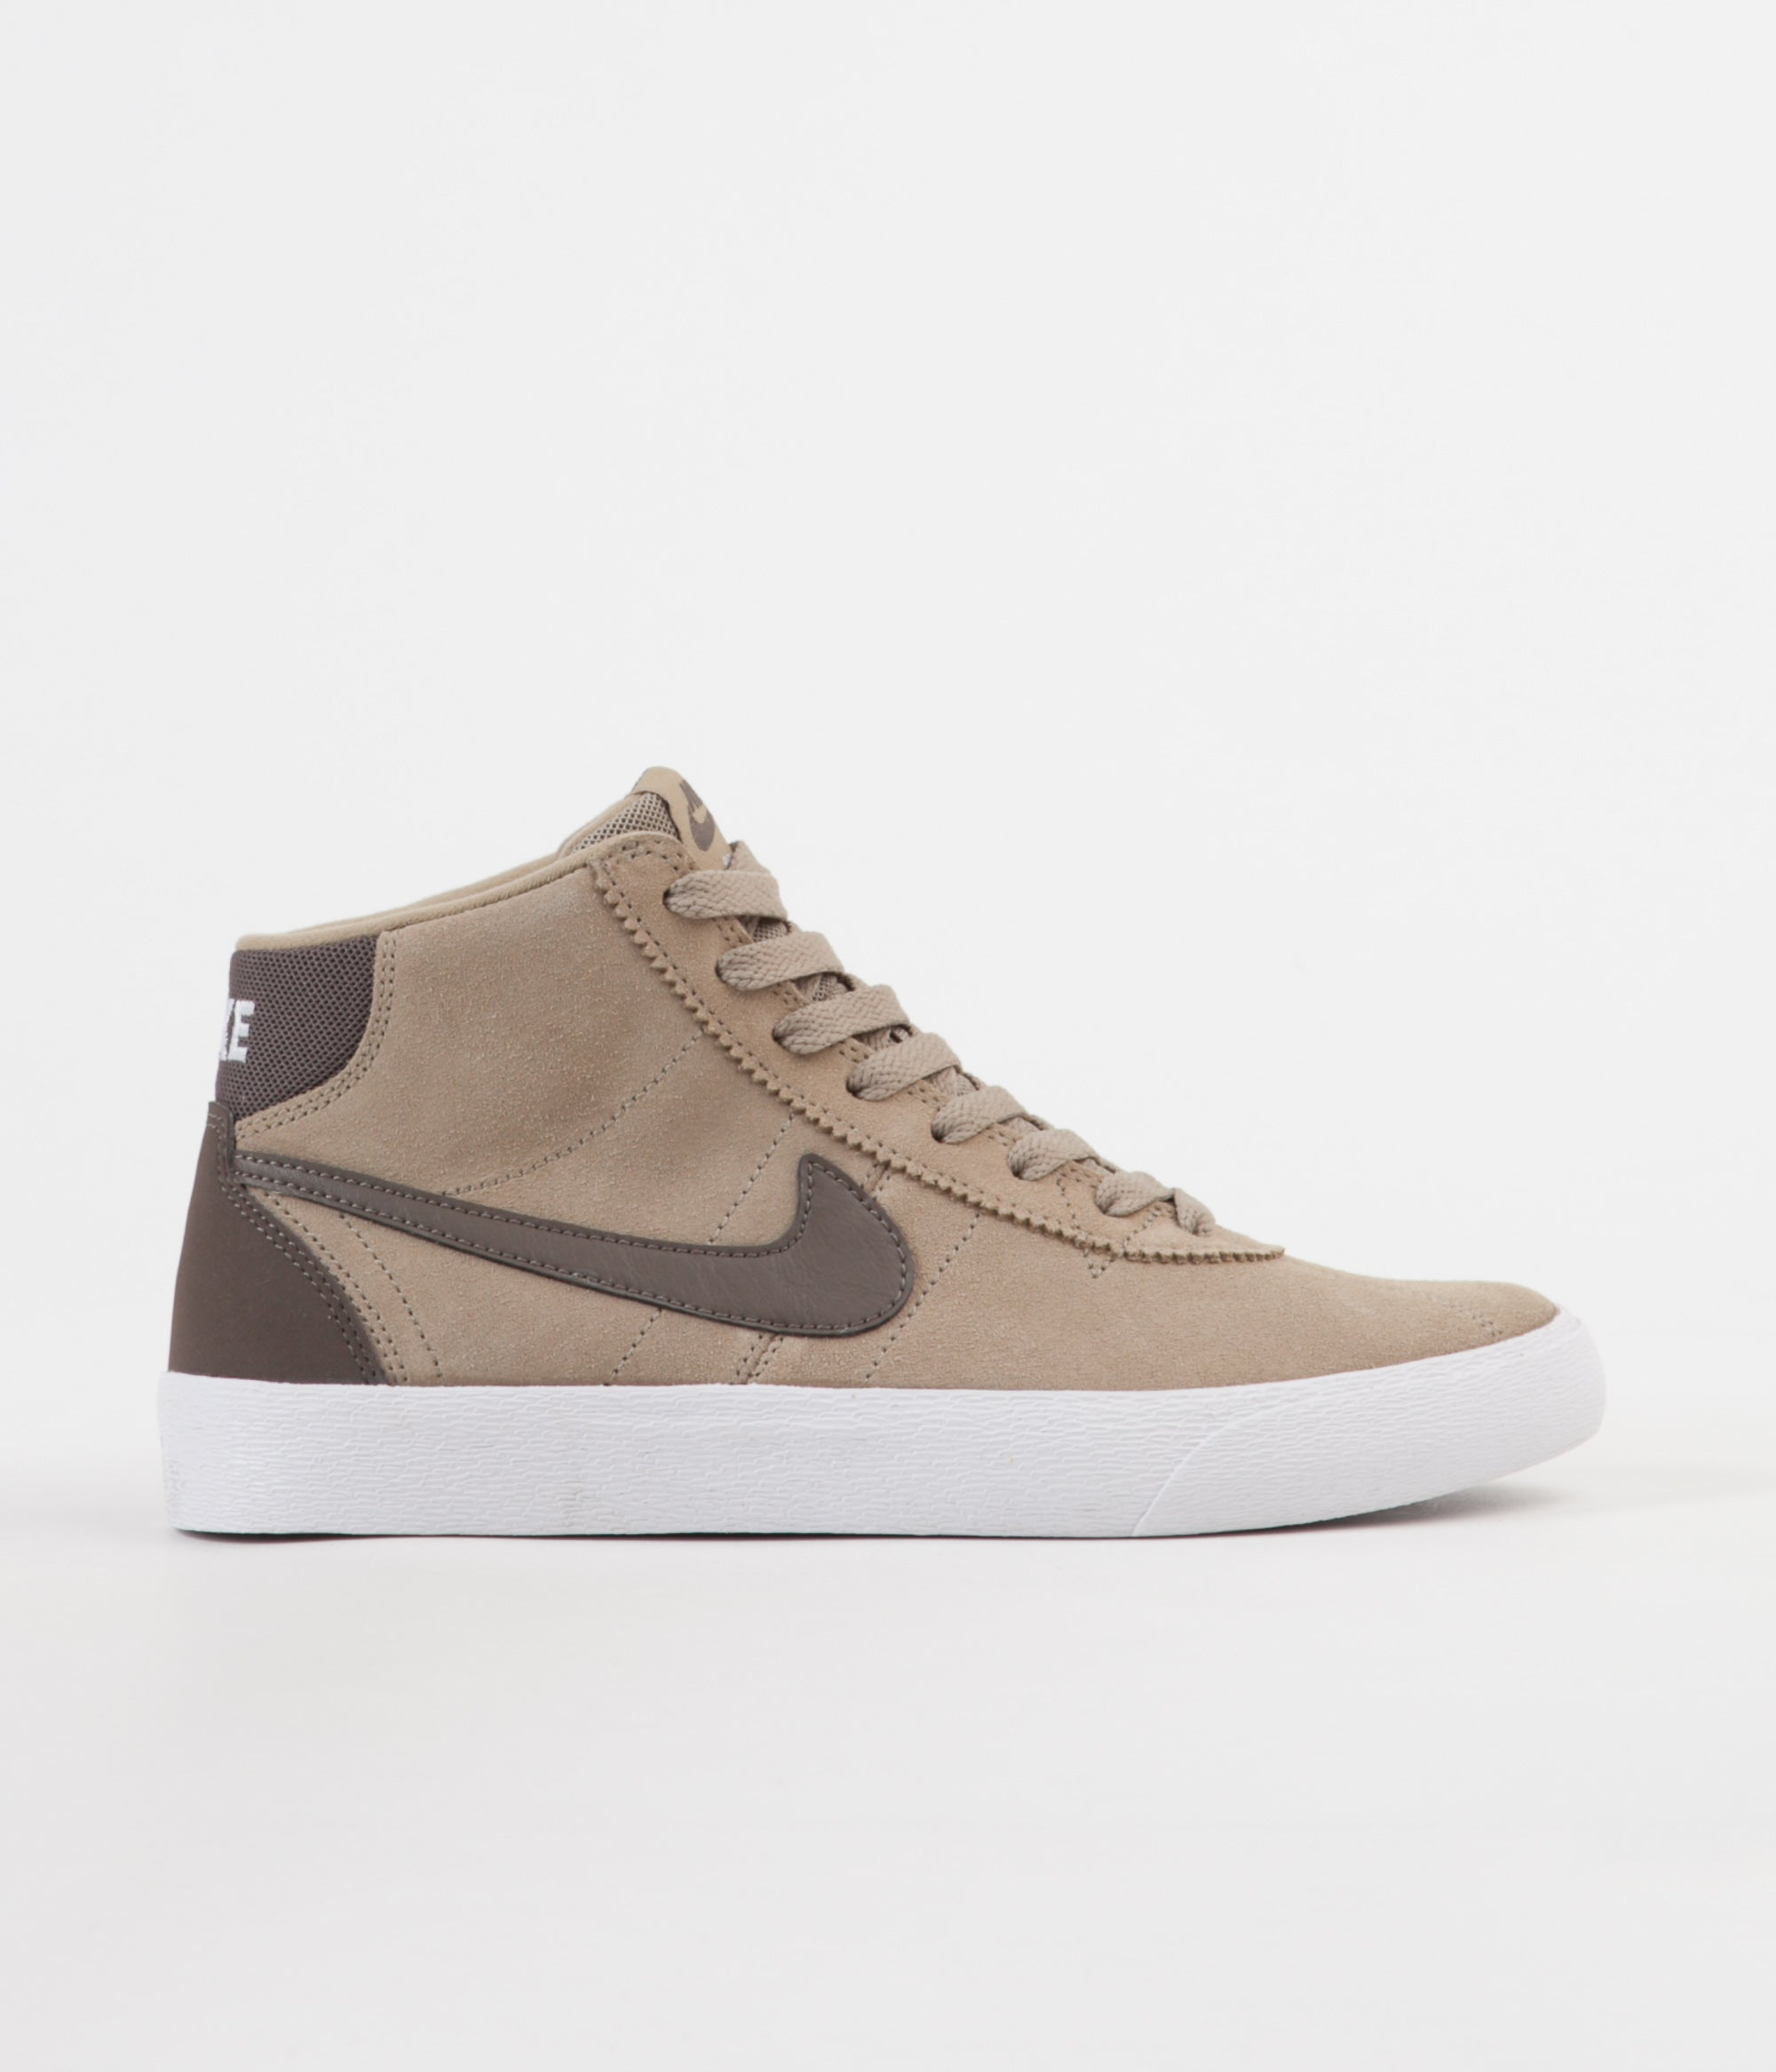 e67e99f89c66 Nike SB Women s Bruin Hi Shoes - Khaki   Ridgerock - White